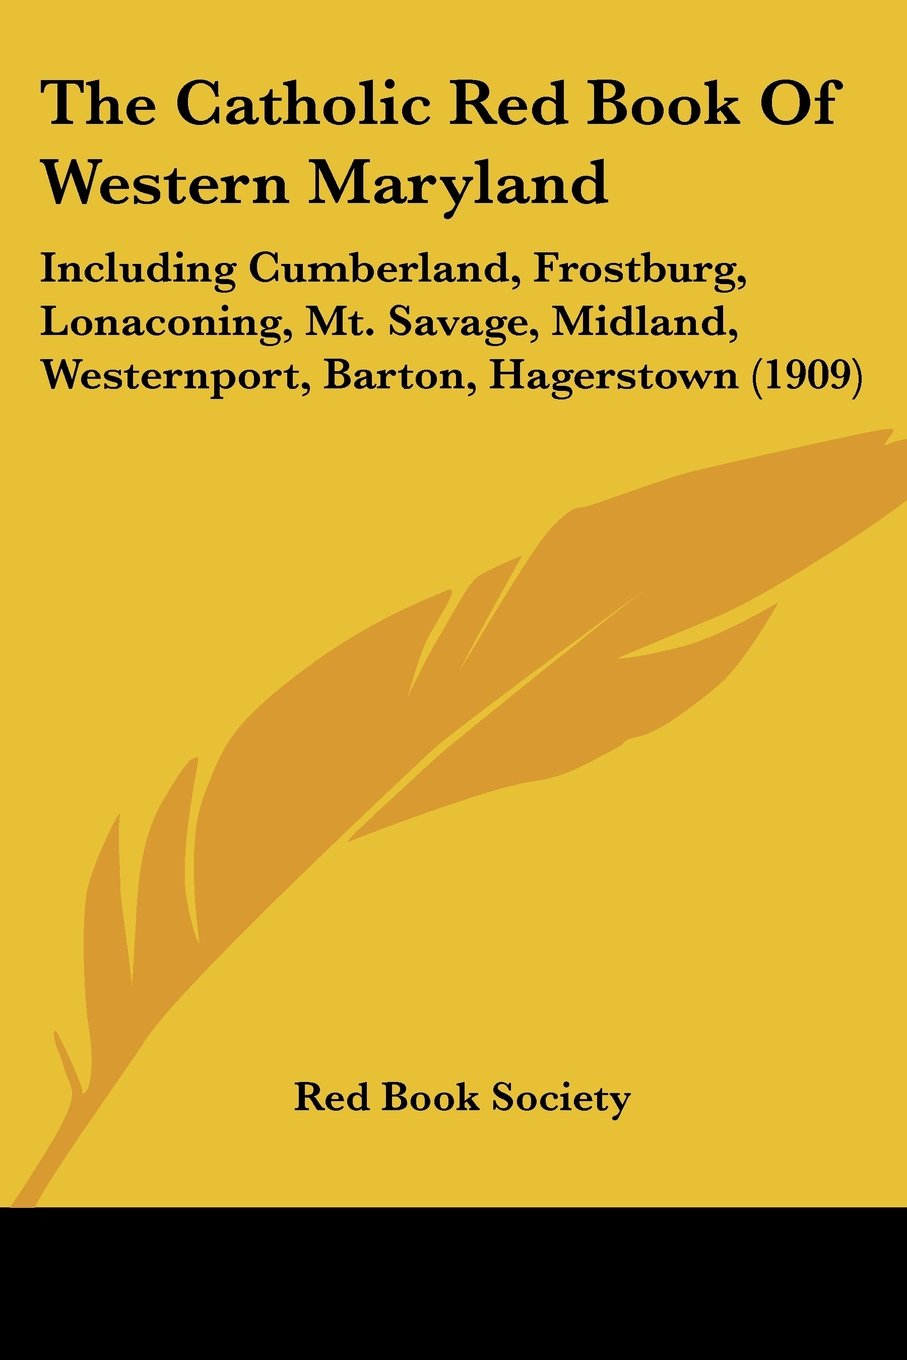 Download The Catholic Red Book Of Western Maryland: Including Cumberland, Frostburg, Lonaconing, Mt. Savage, Midland, Westernport, Barton, Hagerstown (1909) PDF